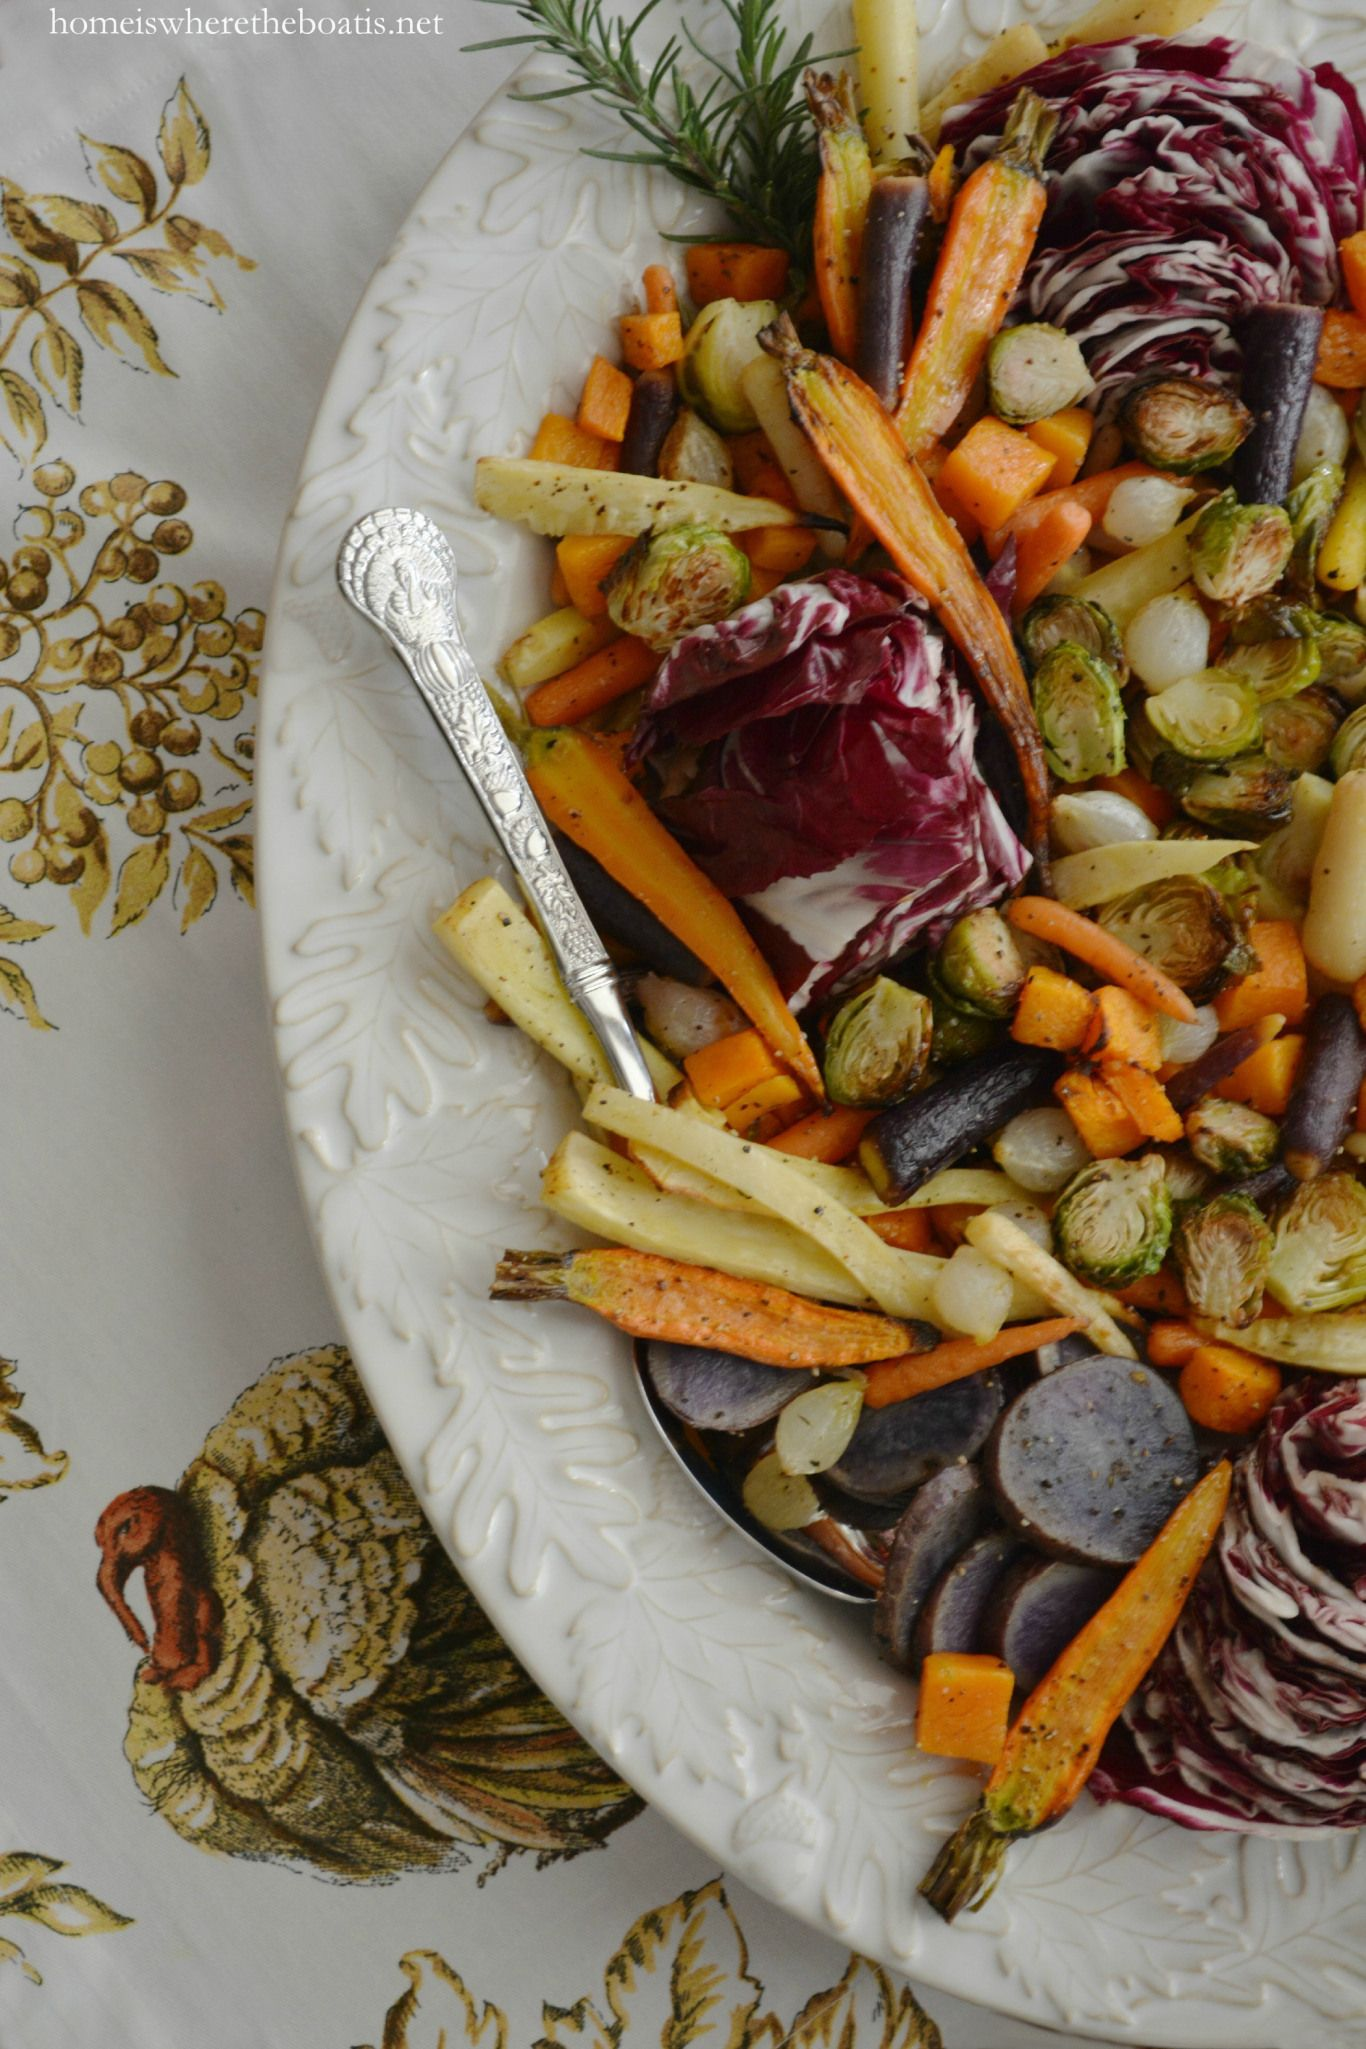 Roasted Harvest Vegetable Salad with Apple Cider Vinaigrette, a healthy and colorful addition to your Thanksgiving feast!   homeiswheretheboatis.net